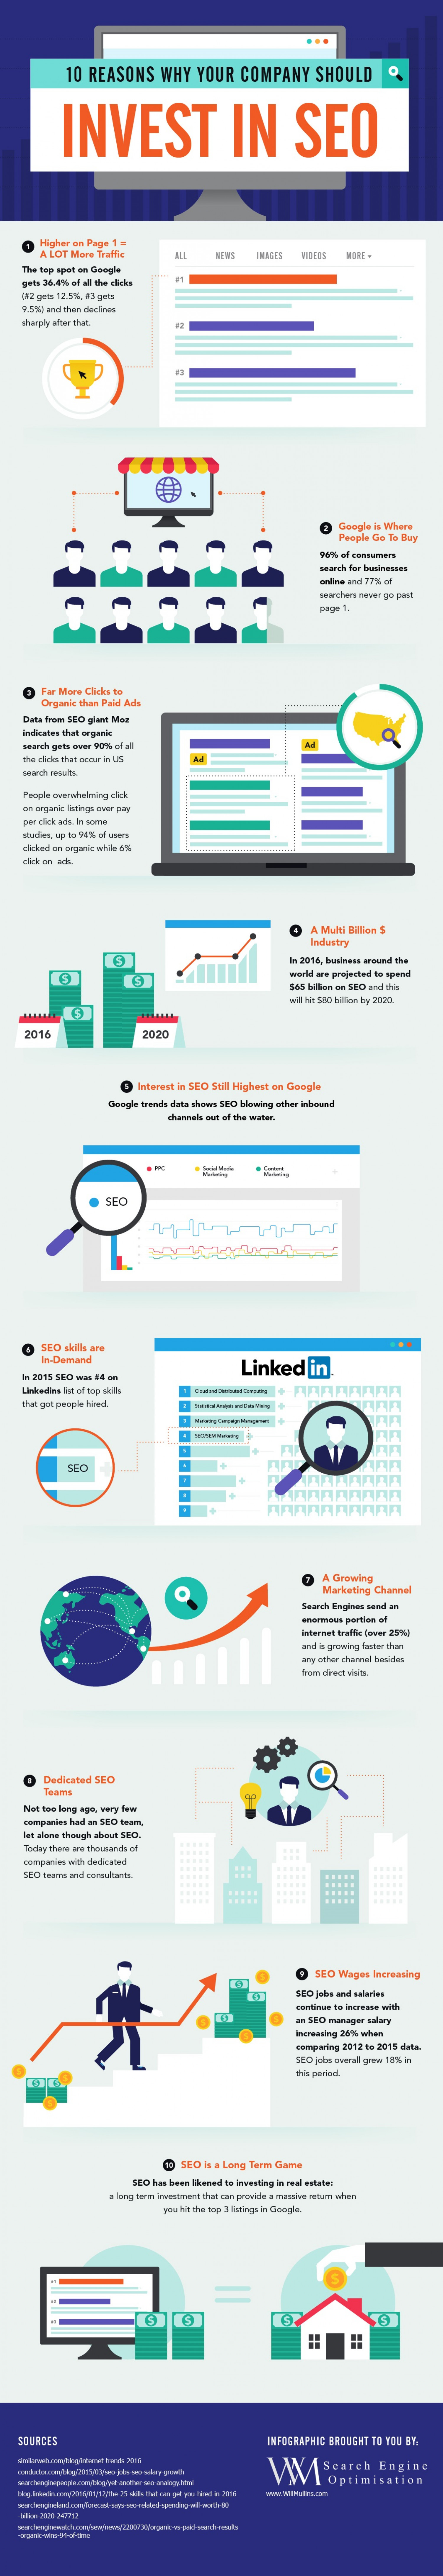 10 Reasons Why Your Company Should Invest In SEO Infographic